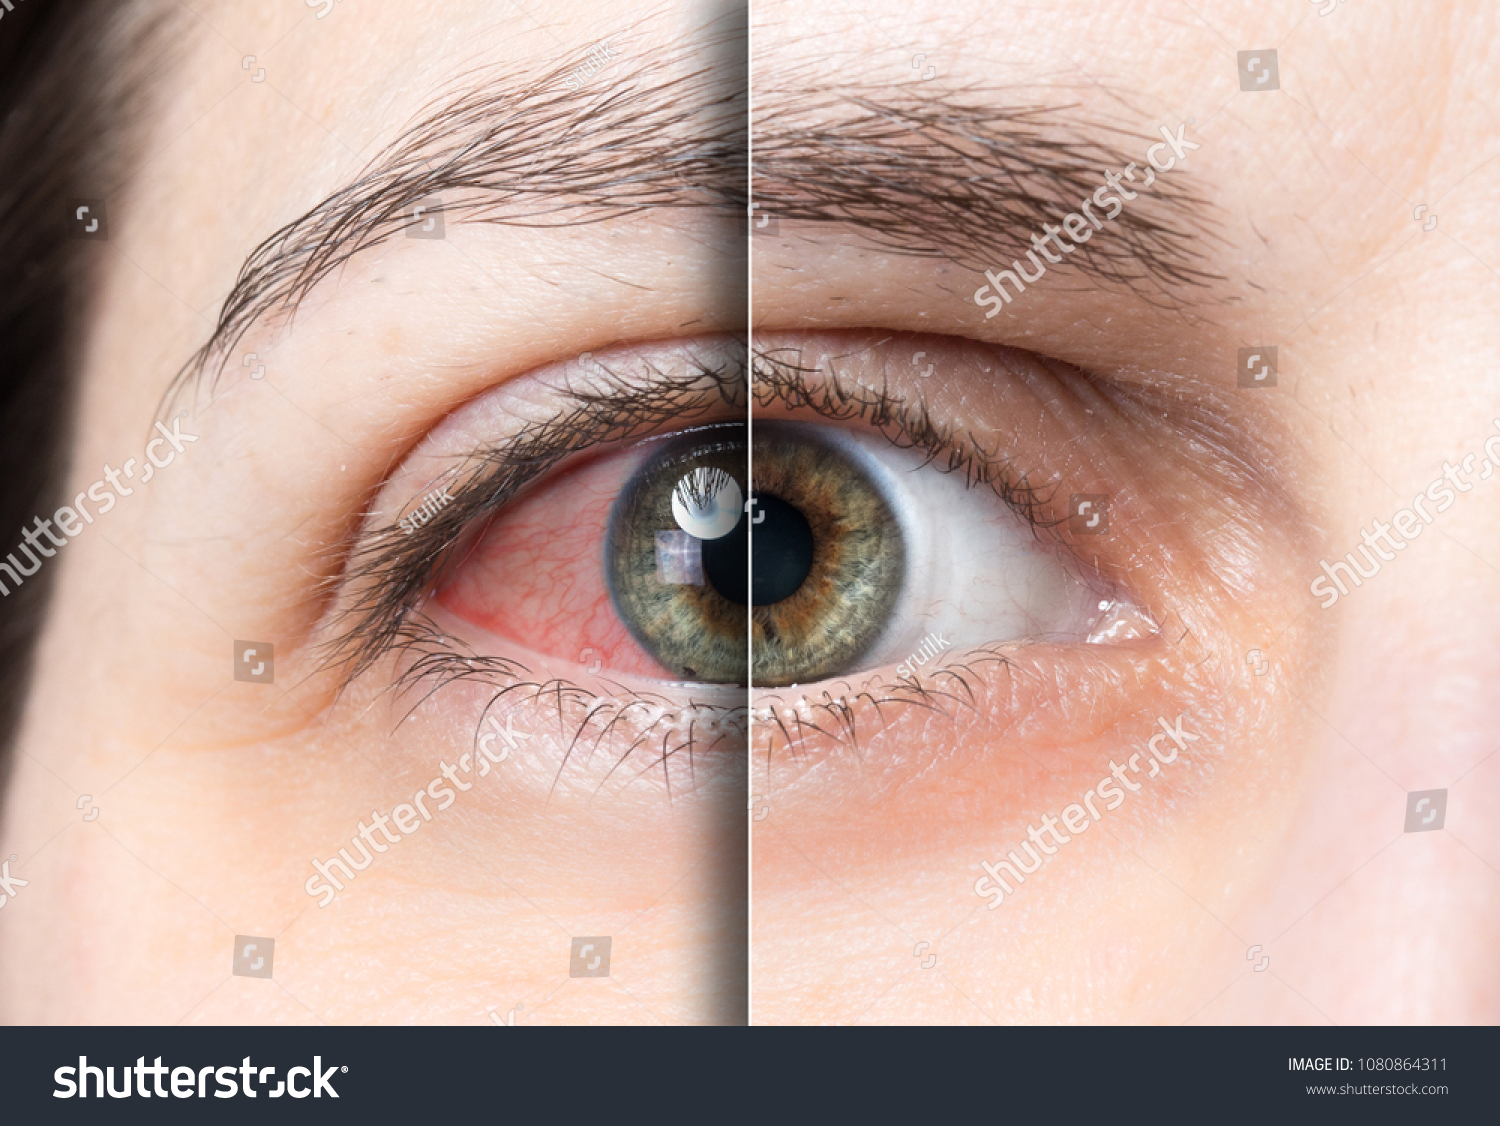 Red eye before and after treatment